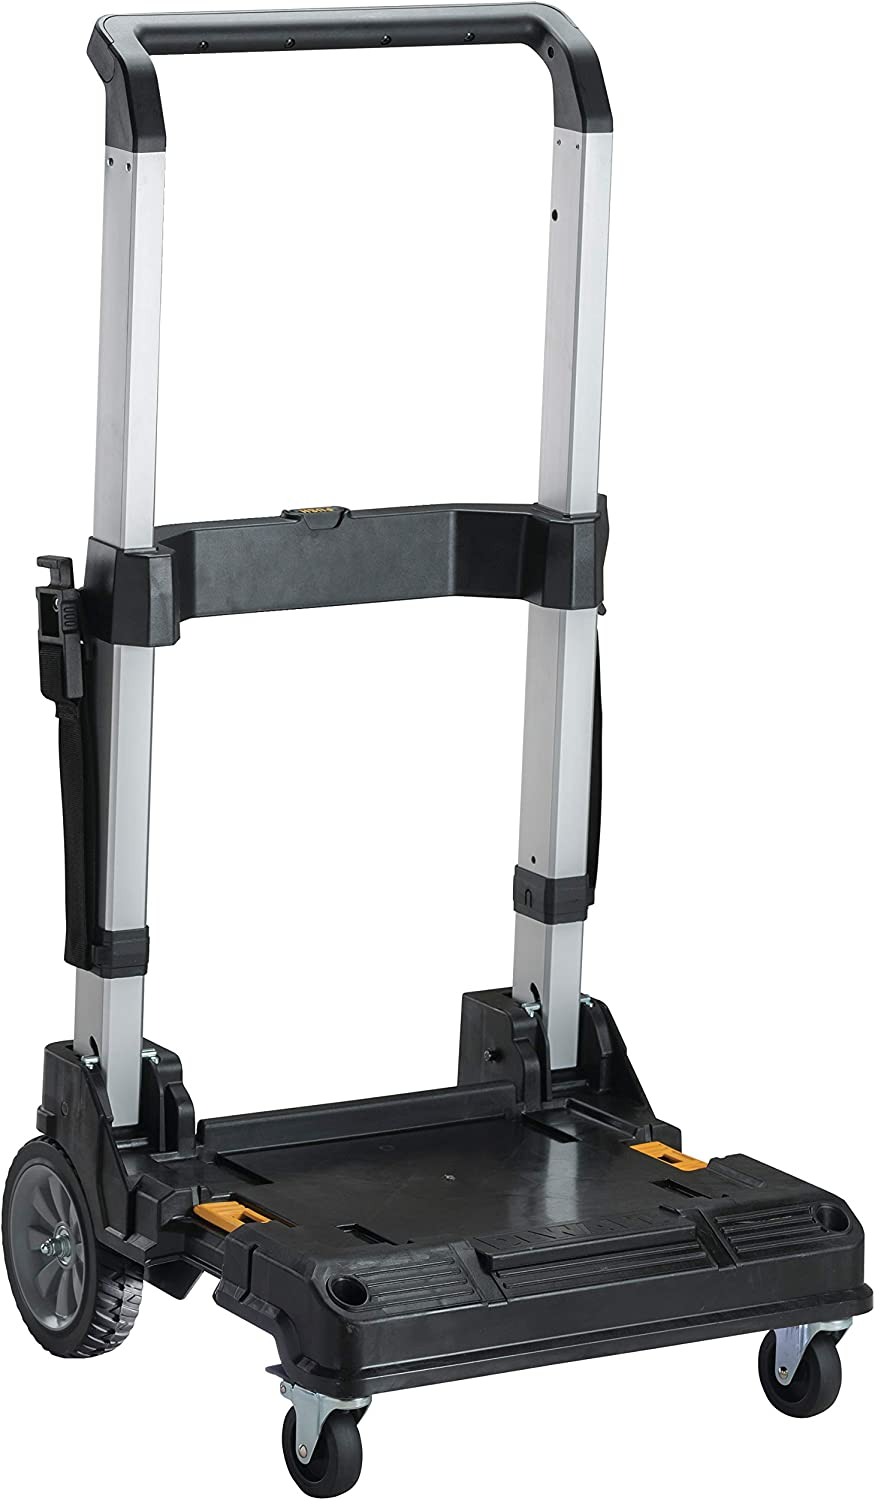 DEWALT TSTAK A surprise price is realized Trolley Cart with Handle 360° Capacity Swivel San Francisco Mall